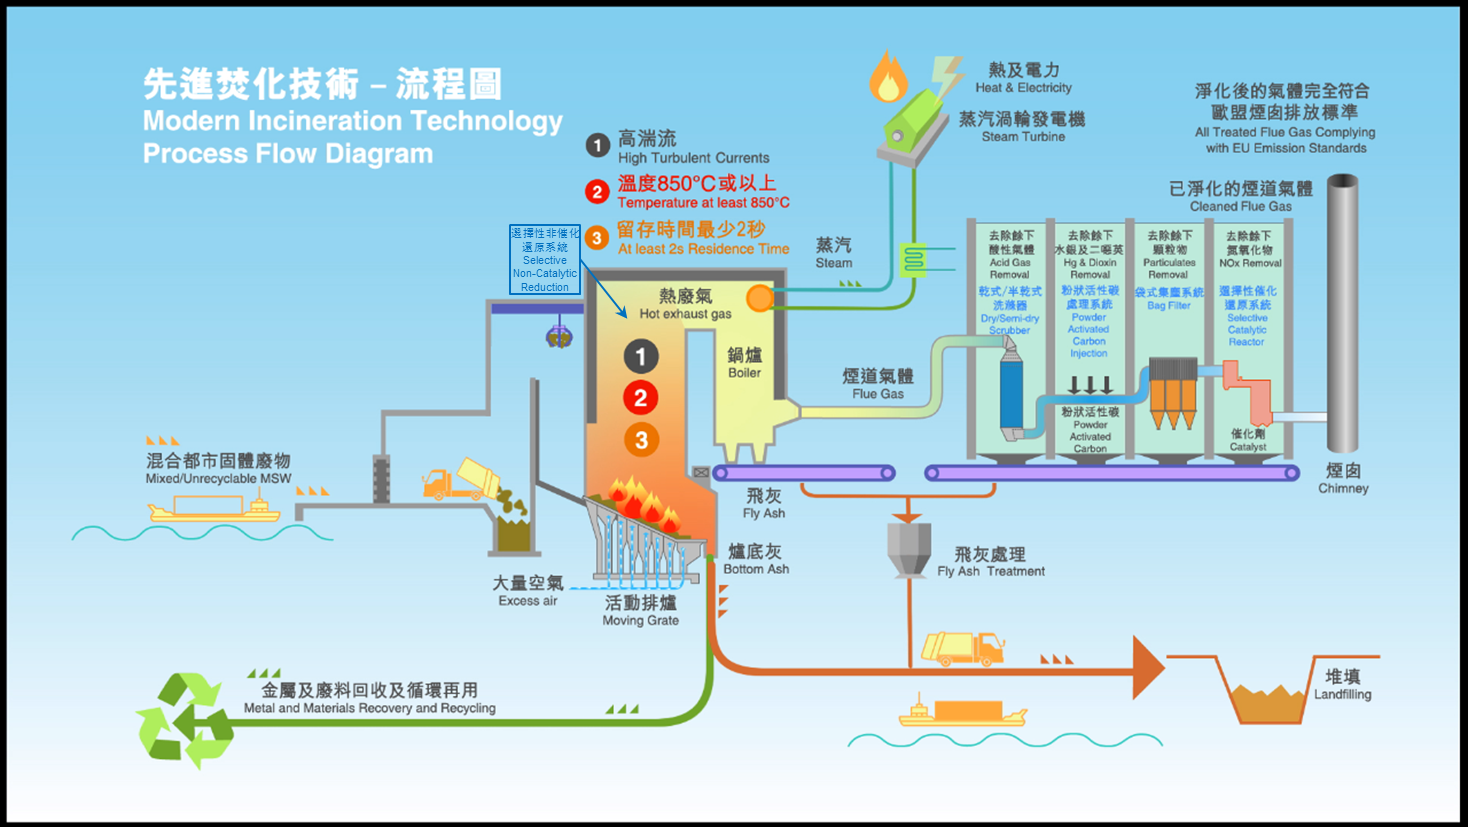 Problems Solutions Environmental Protection Department Process Flow Diagram Wastewater Treatment Plant Modern Incineration Technology